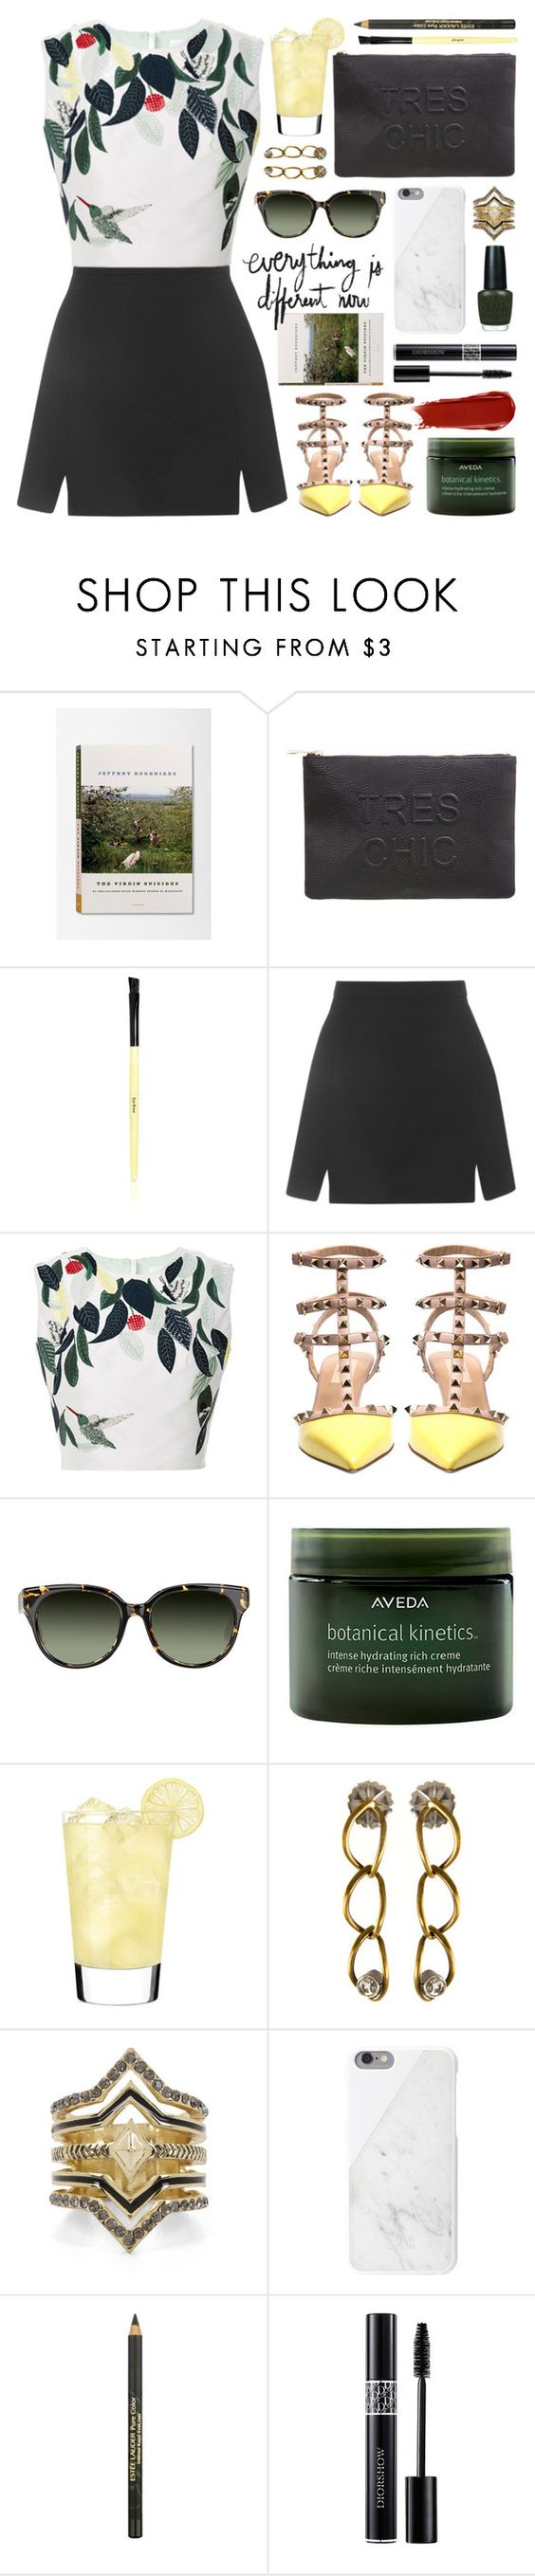 """azede jean-pierre top"" by jesuisunlapin ❤ liked on Polyvore featuring Miss Selfridge, Bobbi Brown Cosmetics, Topshop, Azede Jean-Pierre, Valentino, Barton Perreira, Aveda, Sephora Collection, BCBGeneration and Native Union"